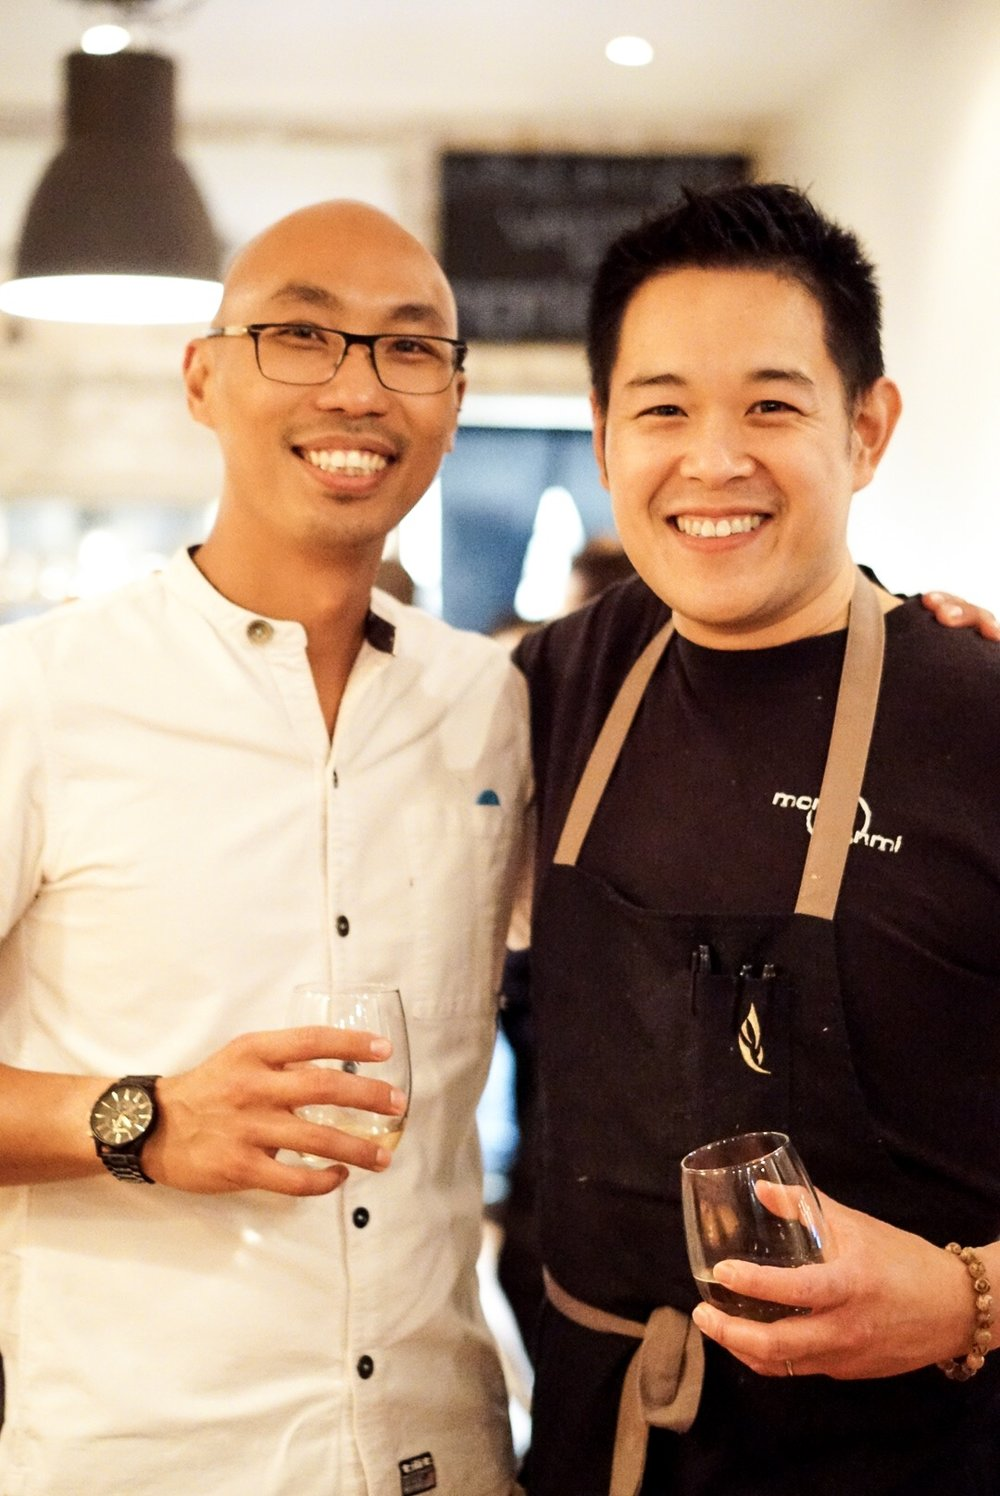 Chef Derrick Teh and Chef Chris Chung